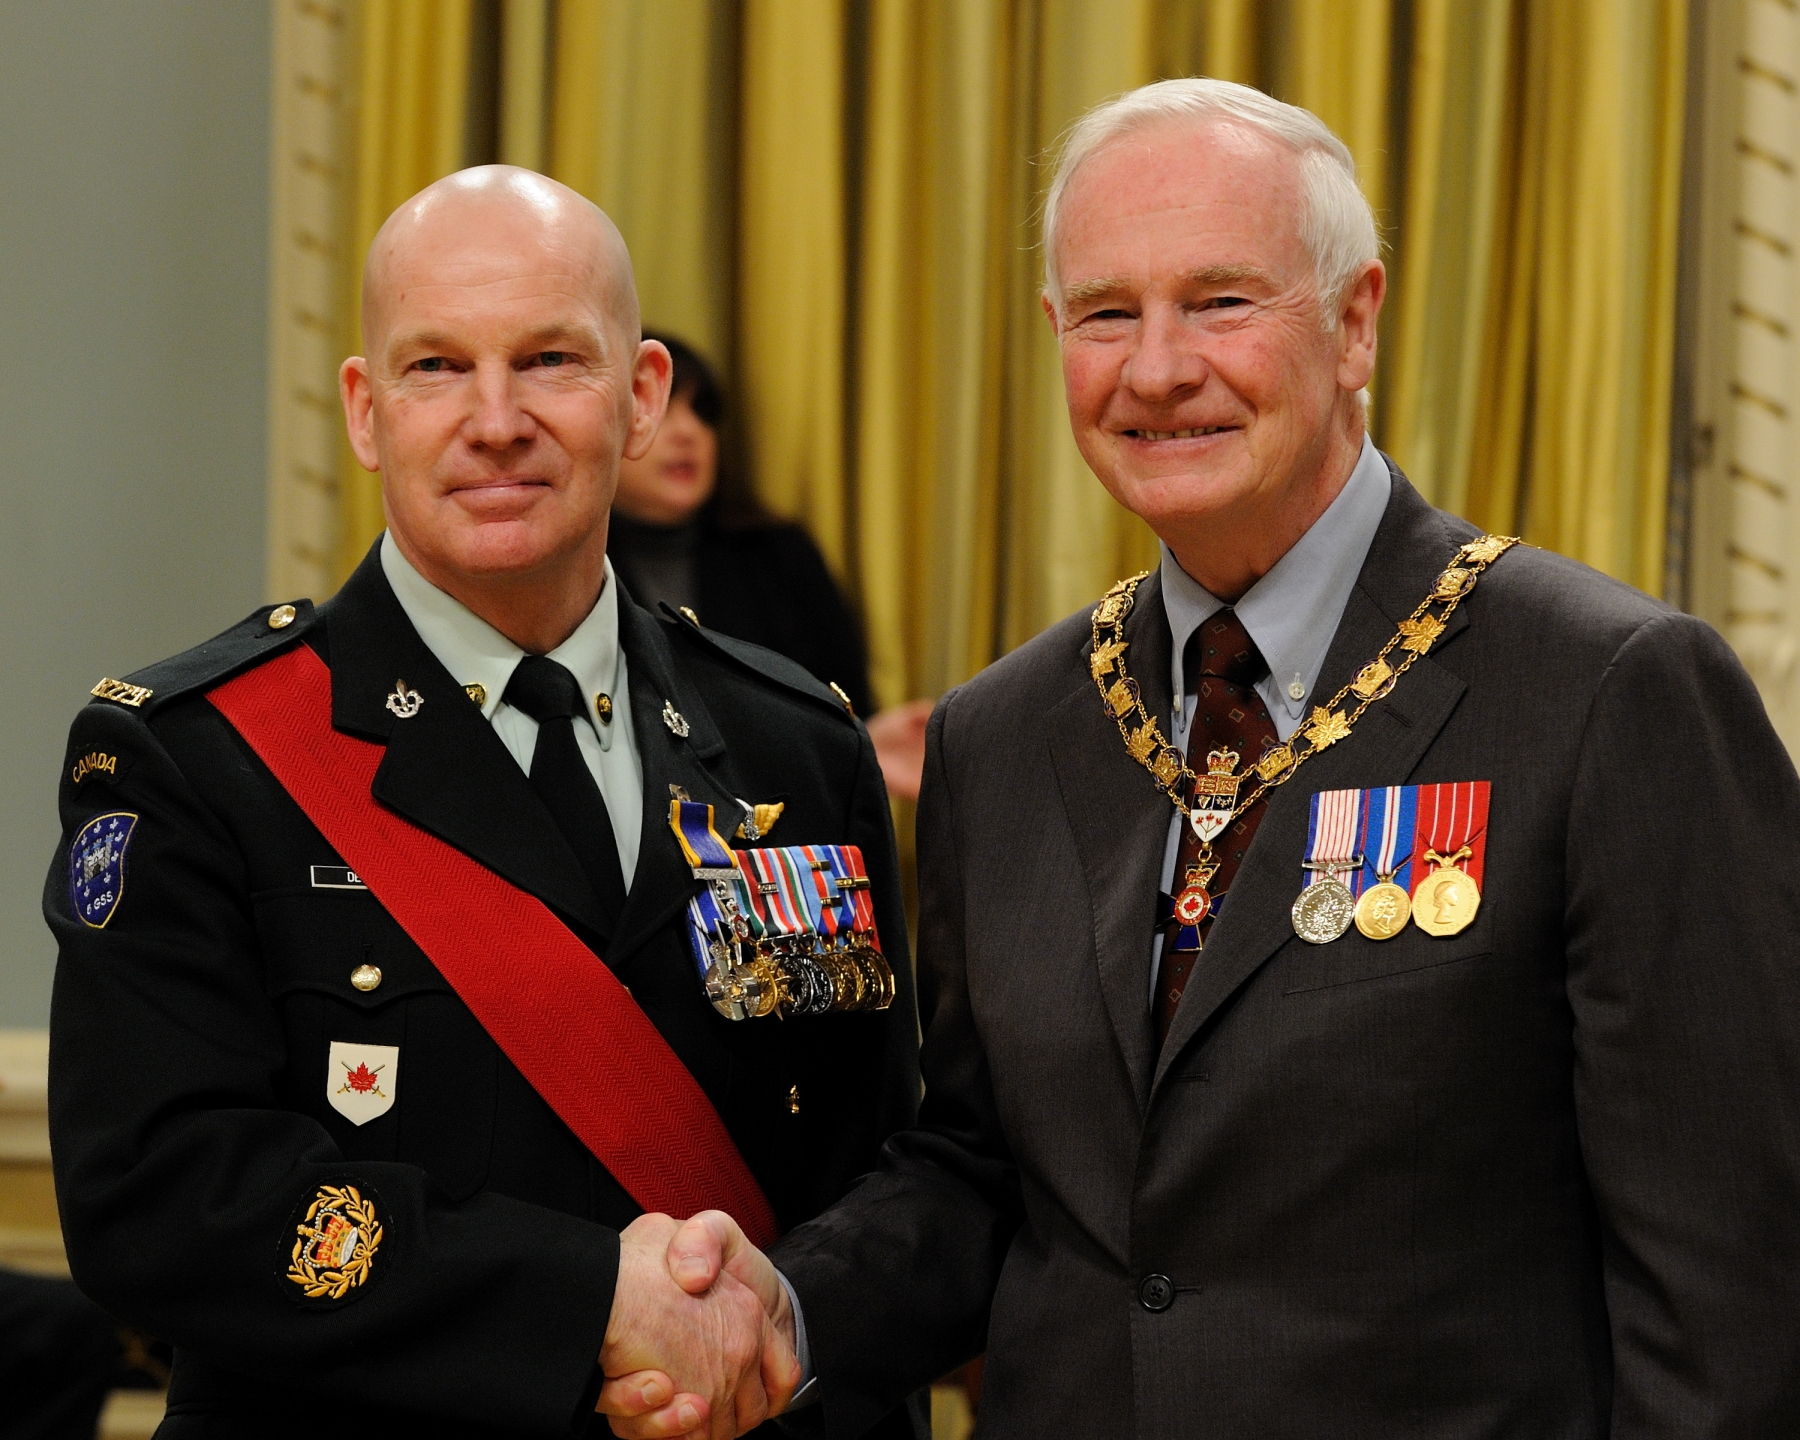 His Excellency presented the Order of Military Merit at the Member level (M.M.M.) to Master Warrant Officer André Demers, M.M.M., M.S.M., C.D., Canadian Forces Base/Area Support Unit Montreal, Montréal, Quebec.